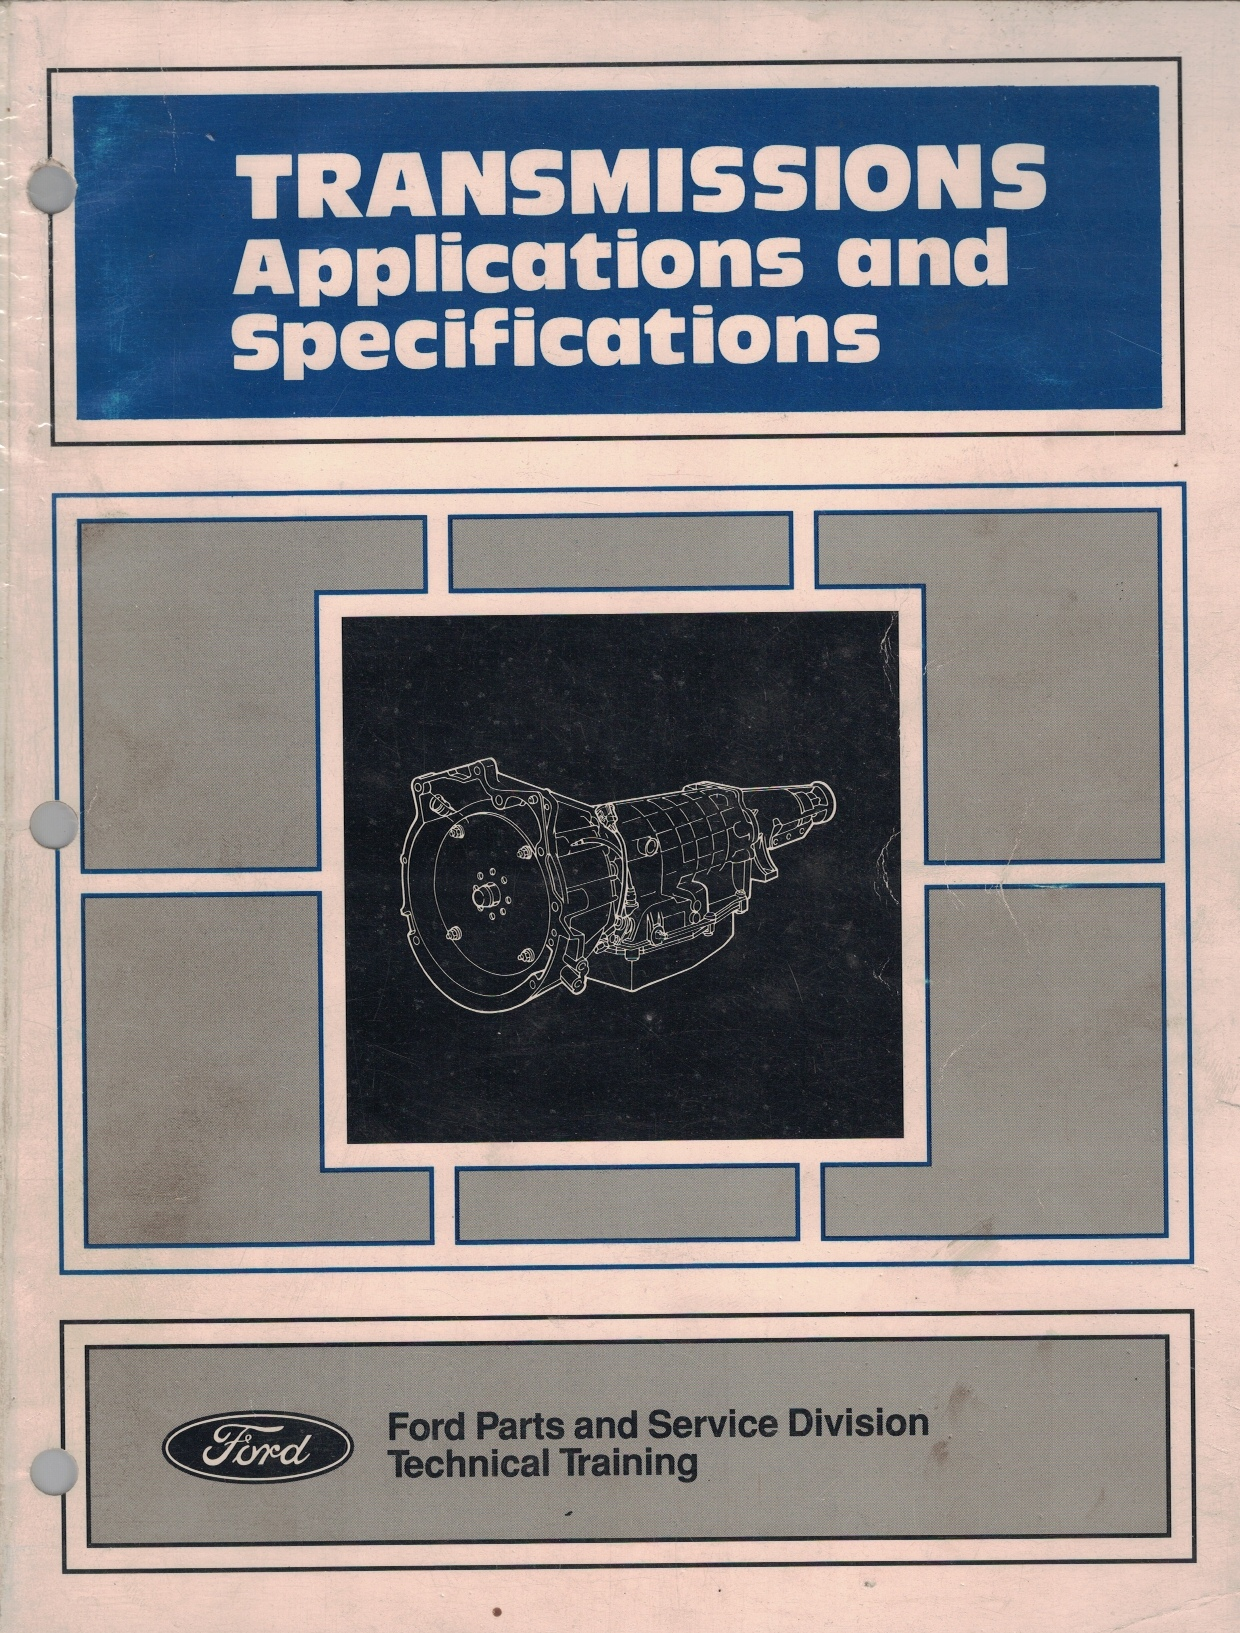 Image for 1990 Ford Transmissions and Applications [Ford Parts and Service Division Technical Training]